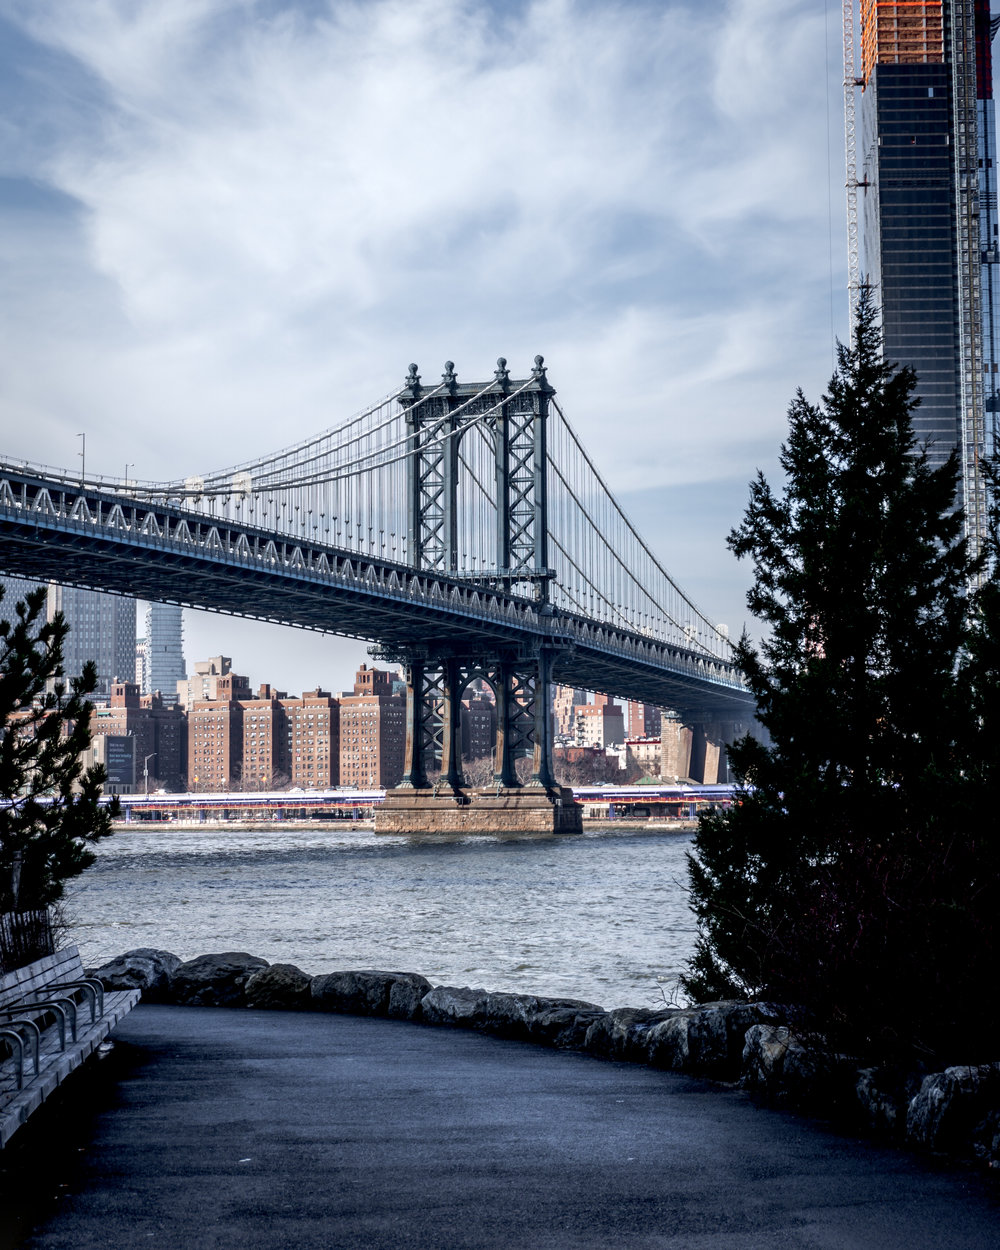 Manhattan Bridge - Brooklyn Bride Park, NY